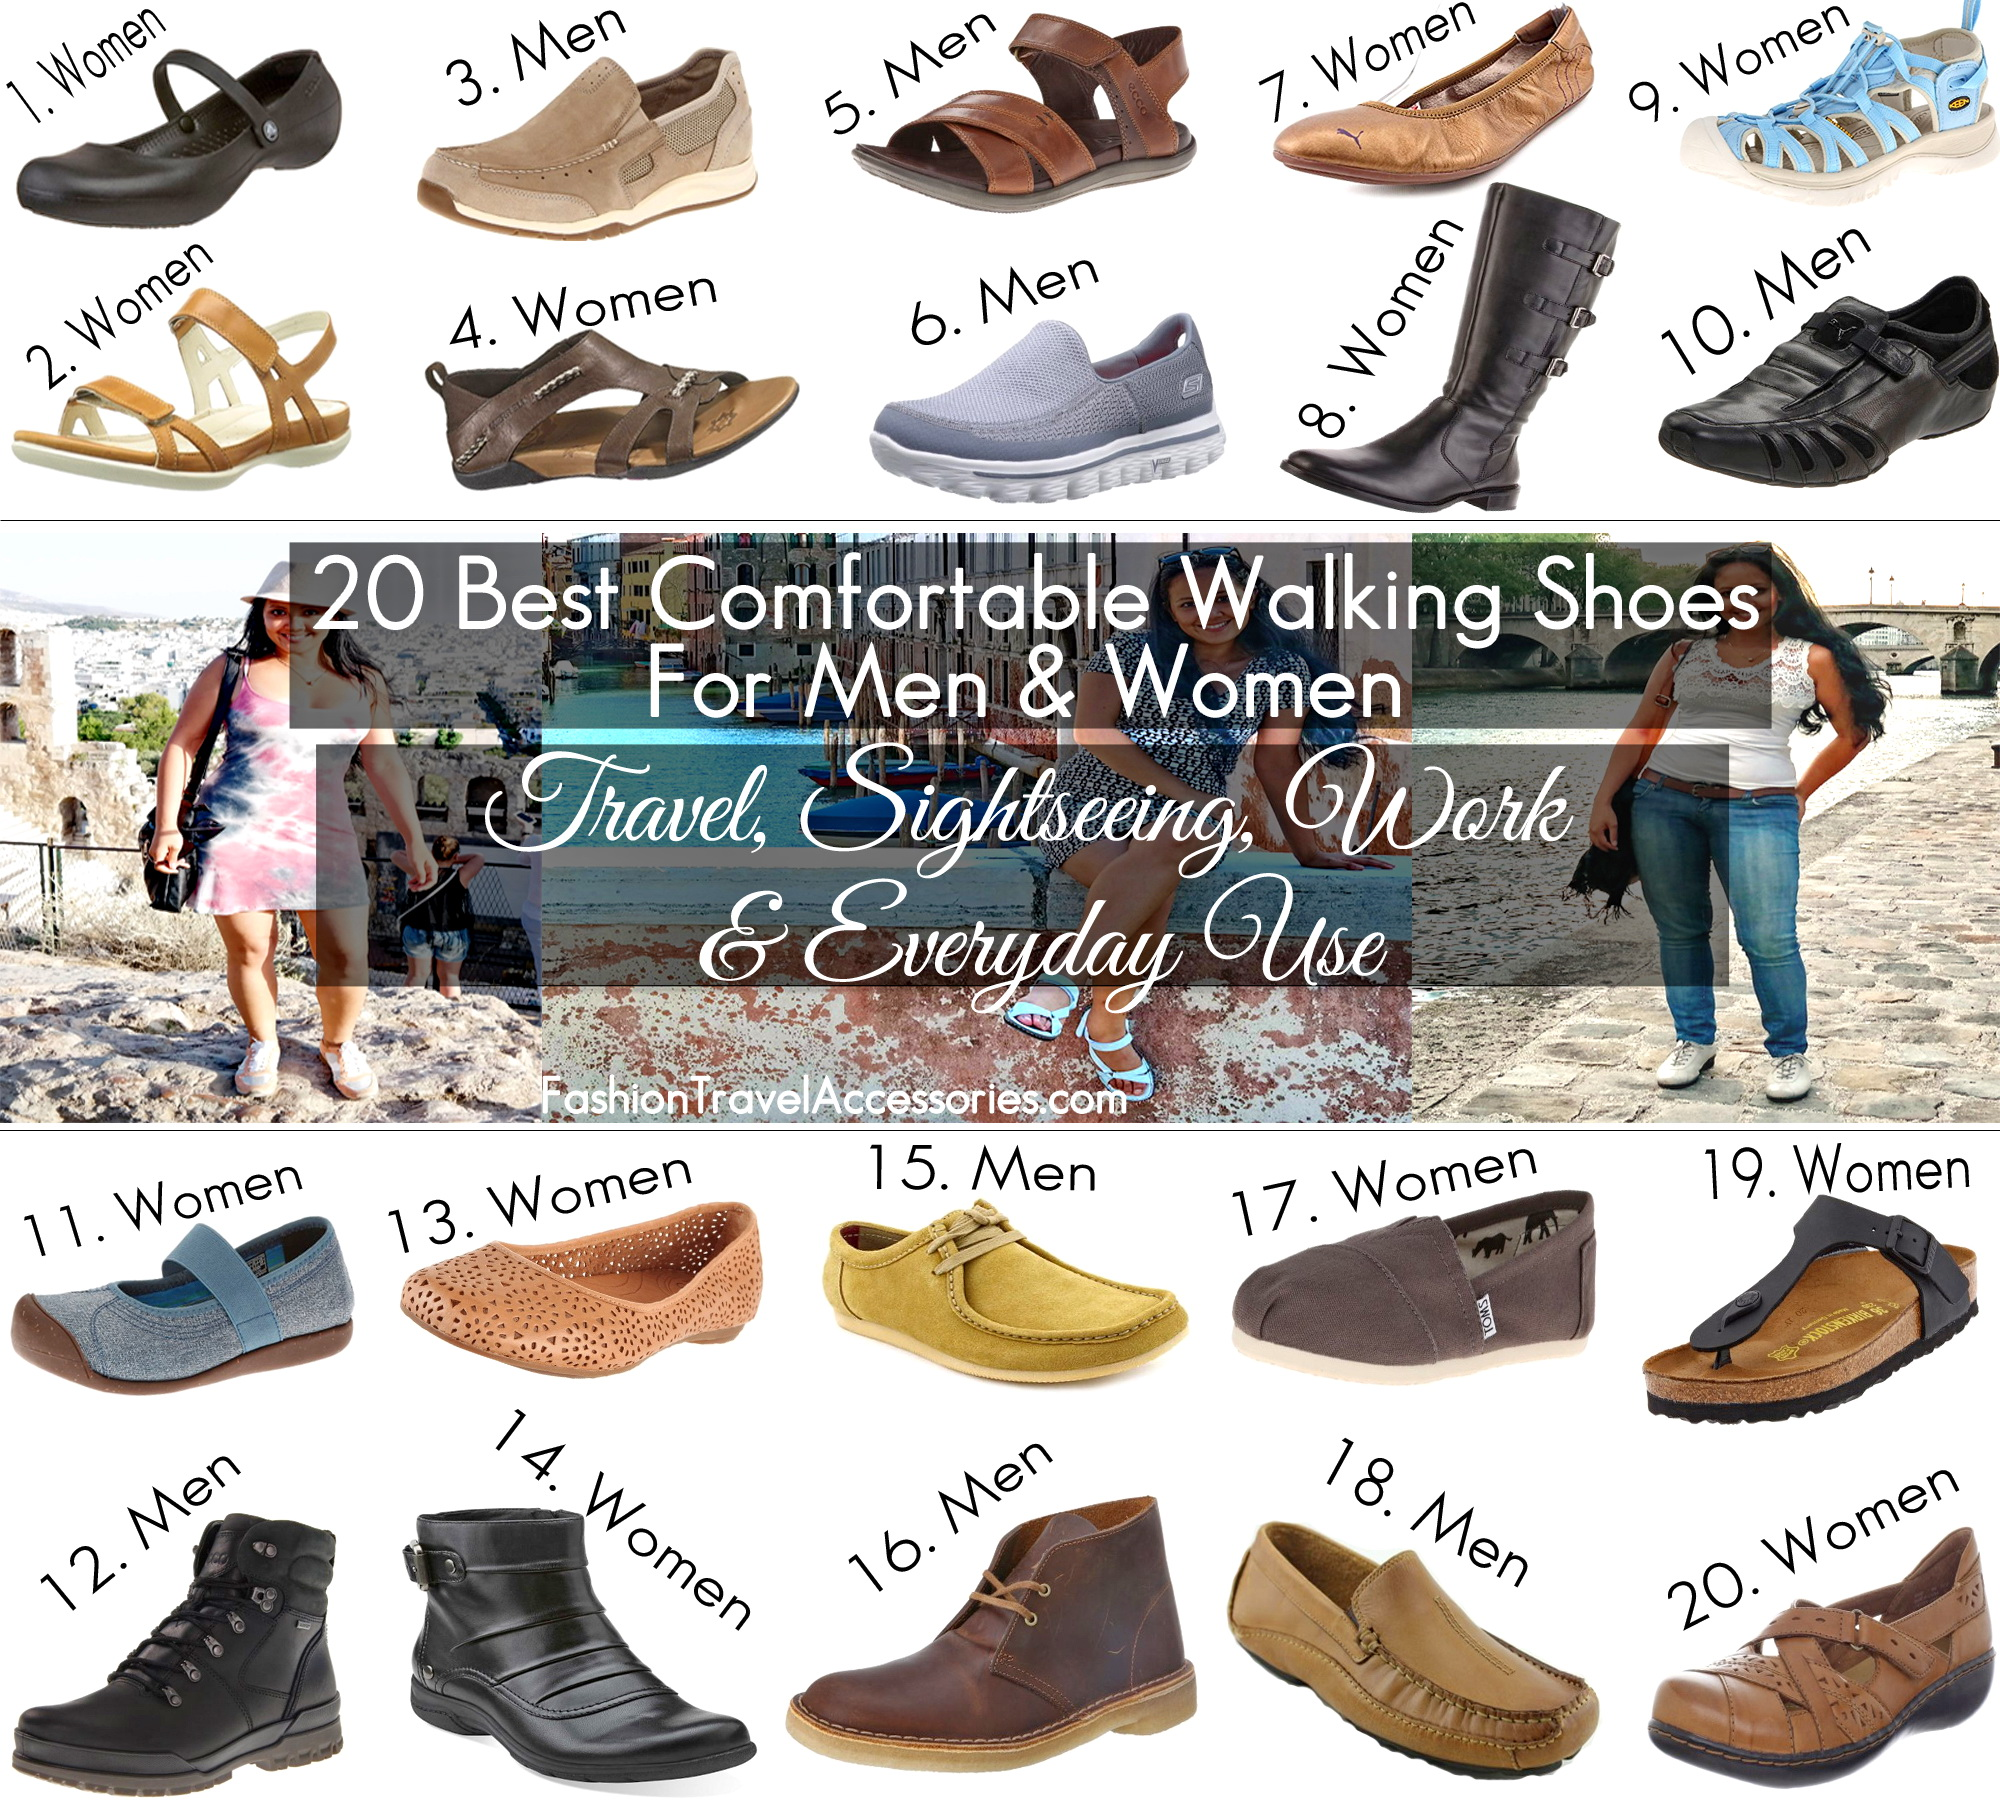 Top 10 Comfortable Walking Shoes For Women and Men